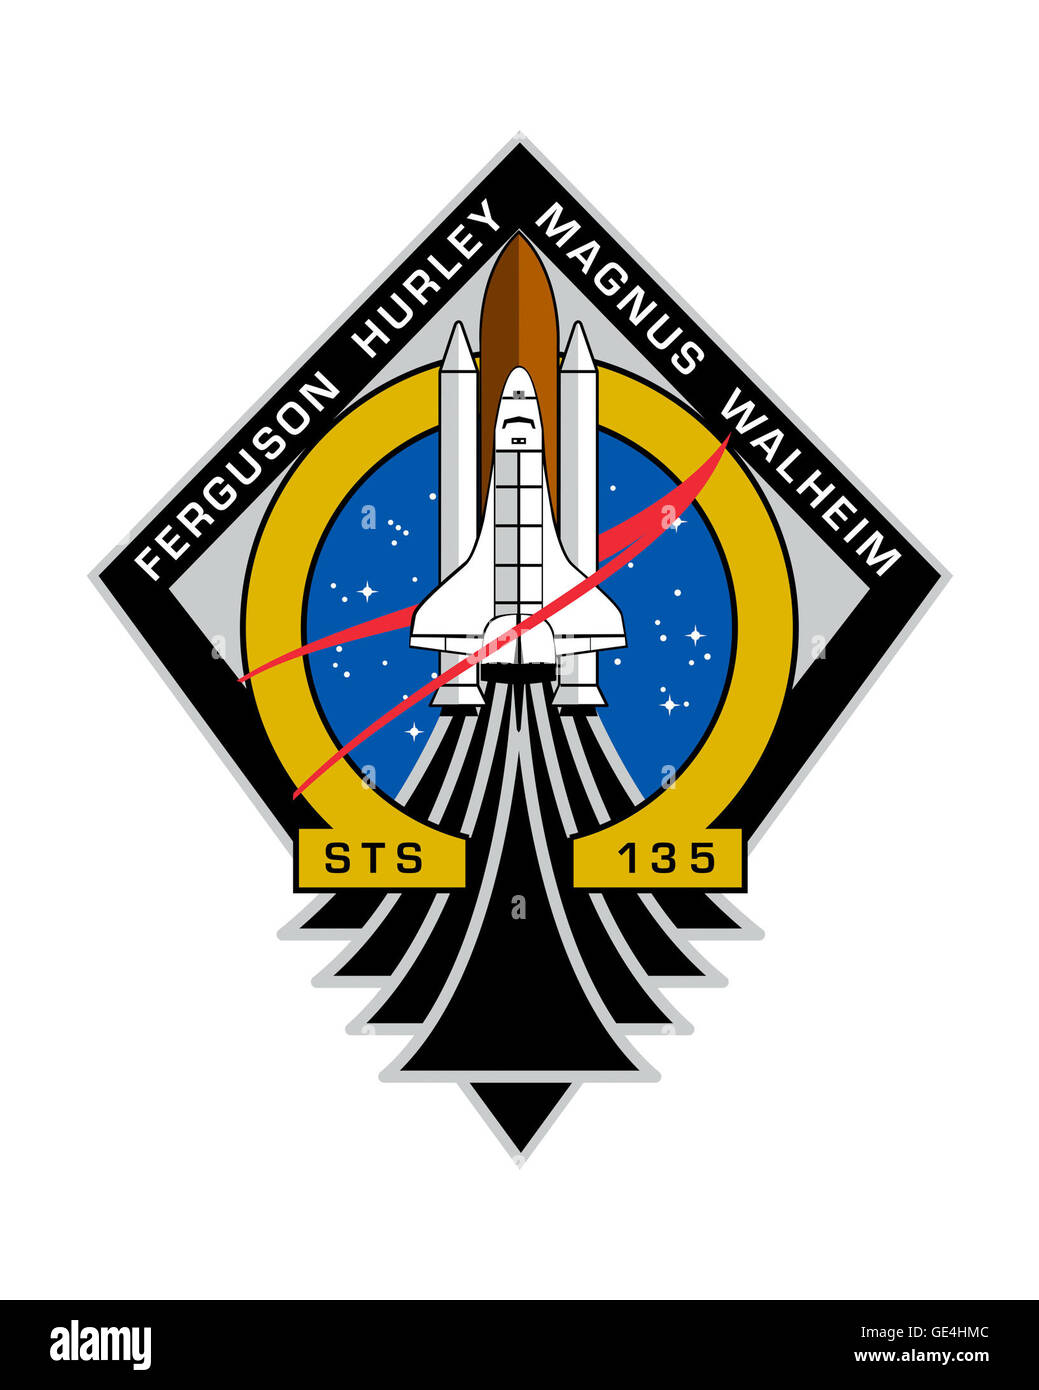 Launch: July 8, 2011, 11:29 am EDT Landing: July 21, 2011, 5:57 am EDT, Kennedy Space Center Space Shuttle: Atlantis - Stock Image